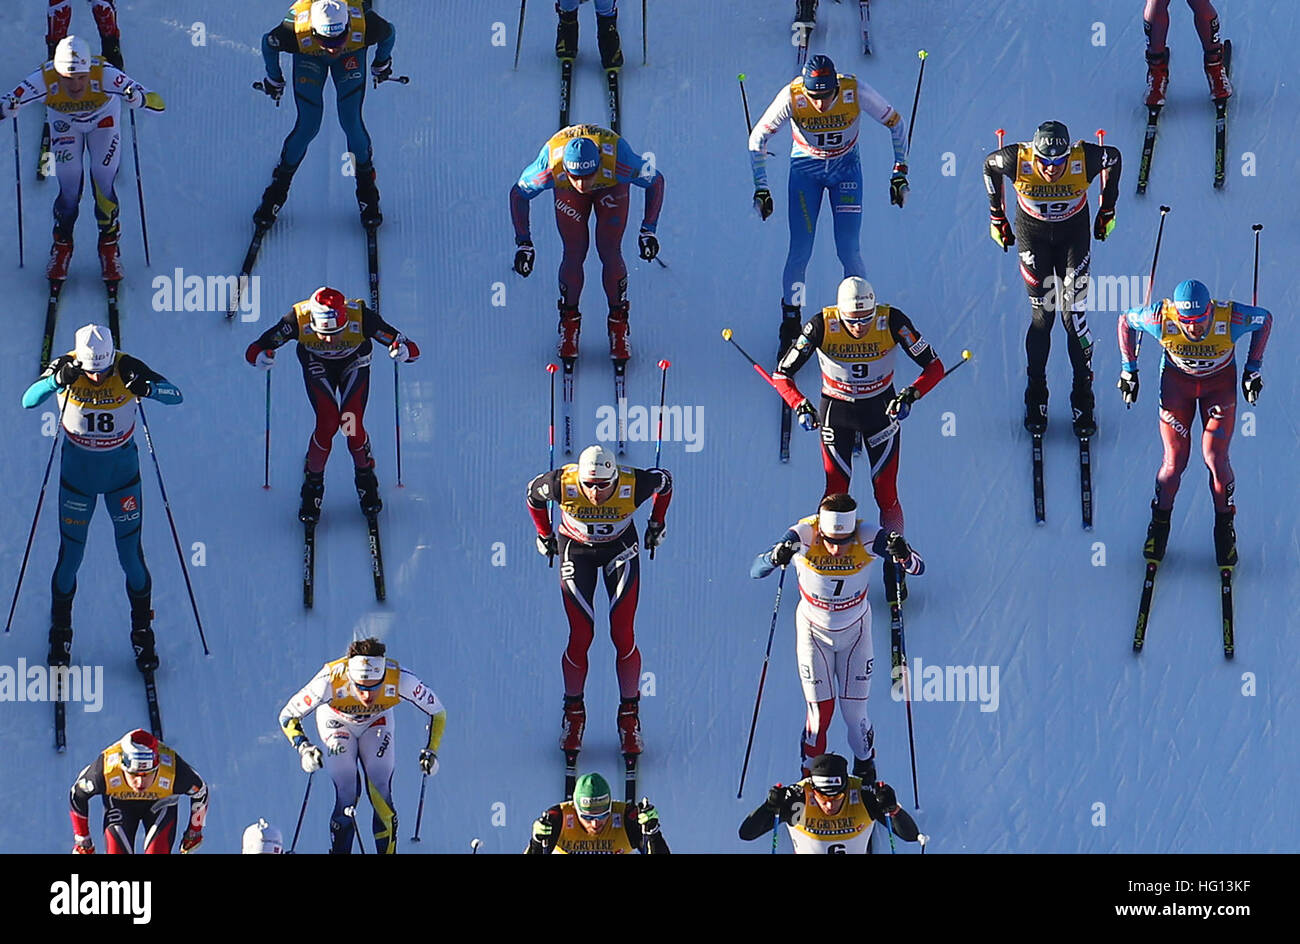 Oberstdorf, Germany. 03rd Jan, 2017. Cross-country skiers in action during the FSI Tour de Ski competition in Oberstdorf, - Stock Image